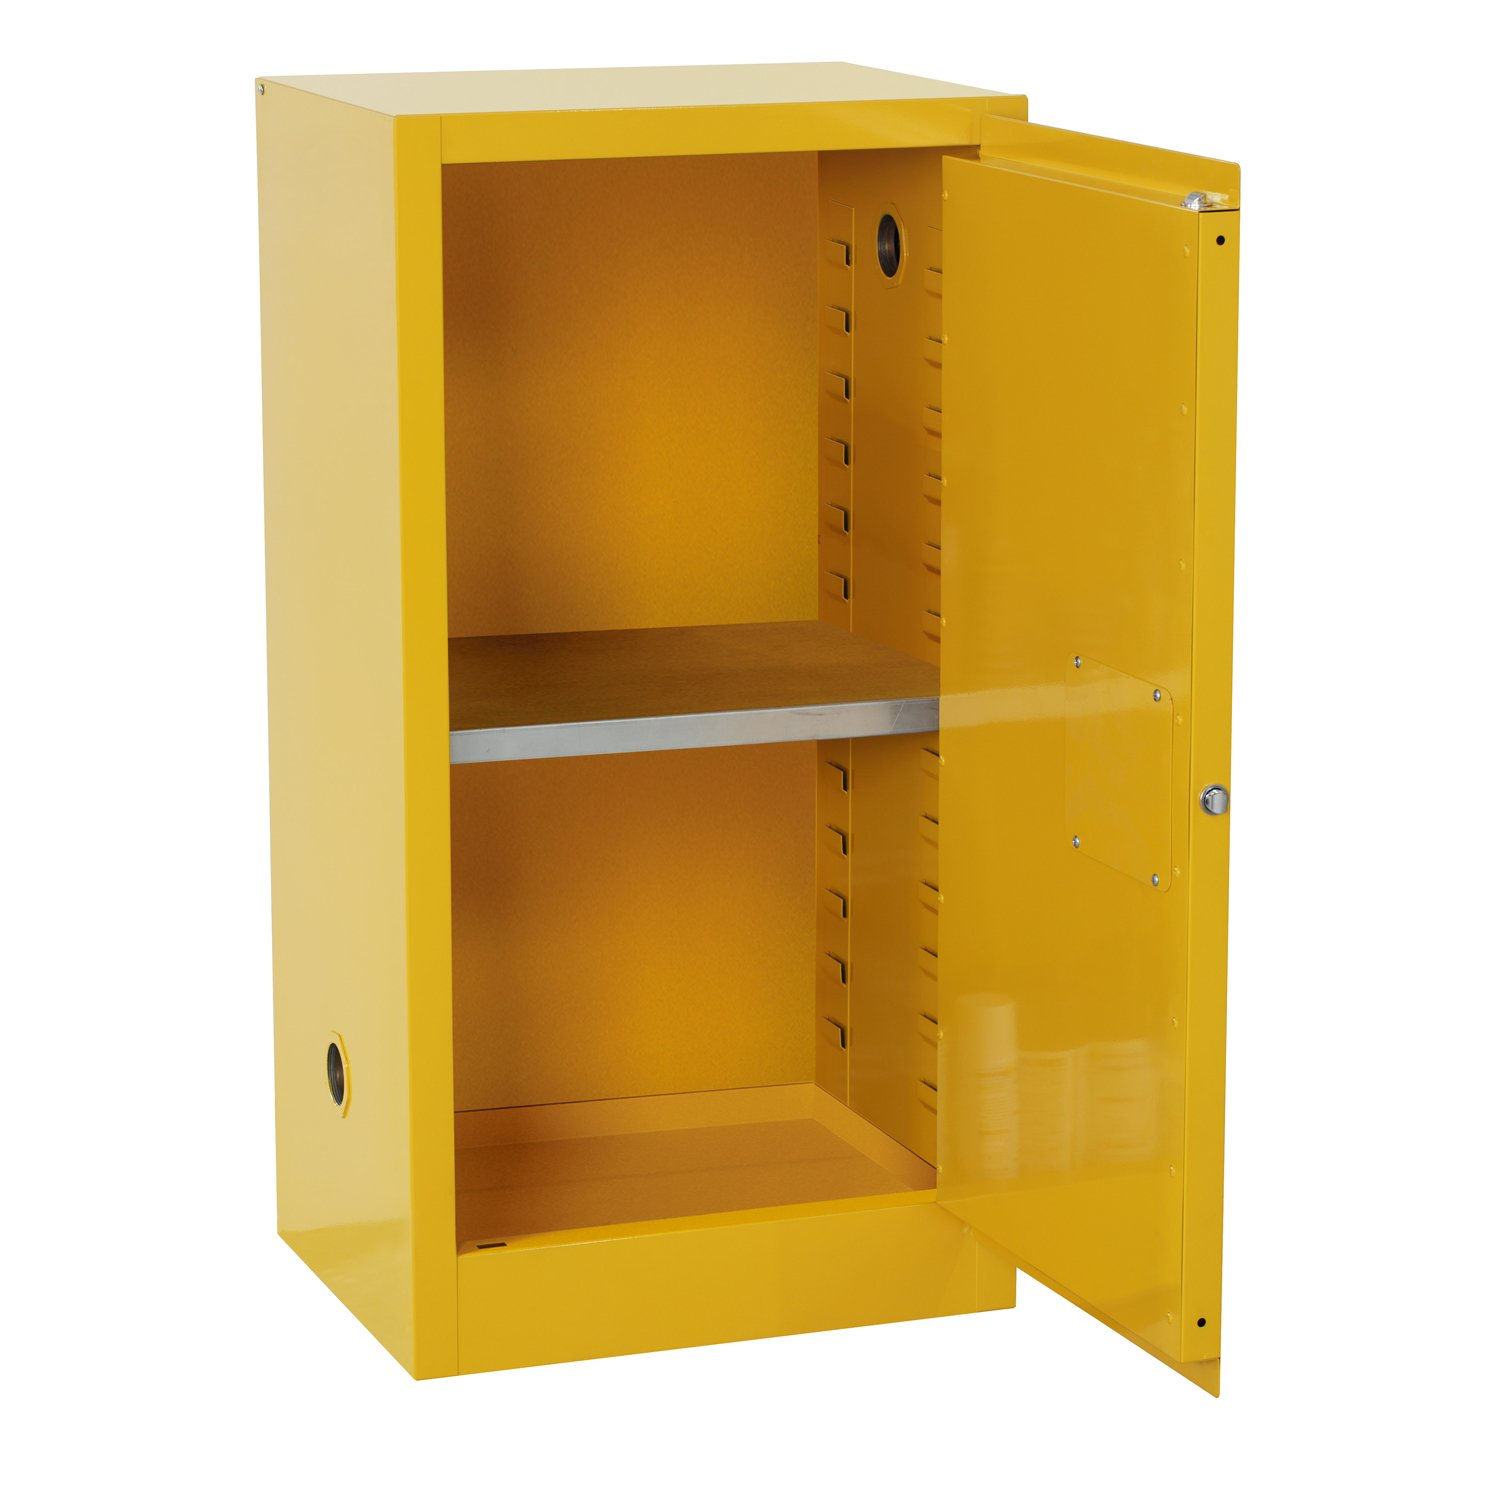 Sandusky Lee SC12F Safety Cabinet for Flammable Liquids, Single Door and Manual Close, 12 gallon, 35''Height, 23''Width, 18''Depth, Steel, Yellow